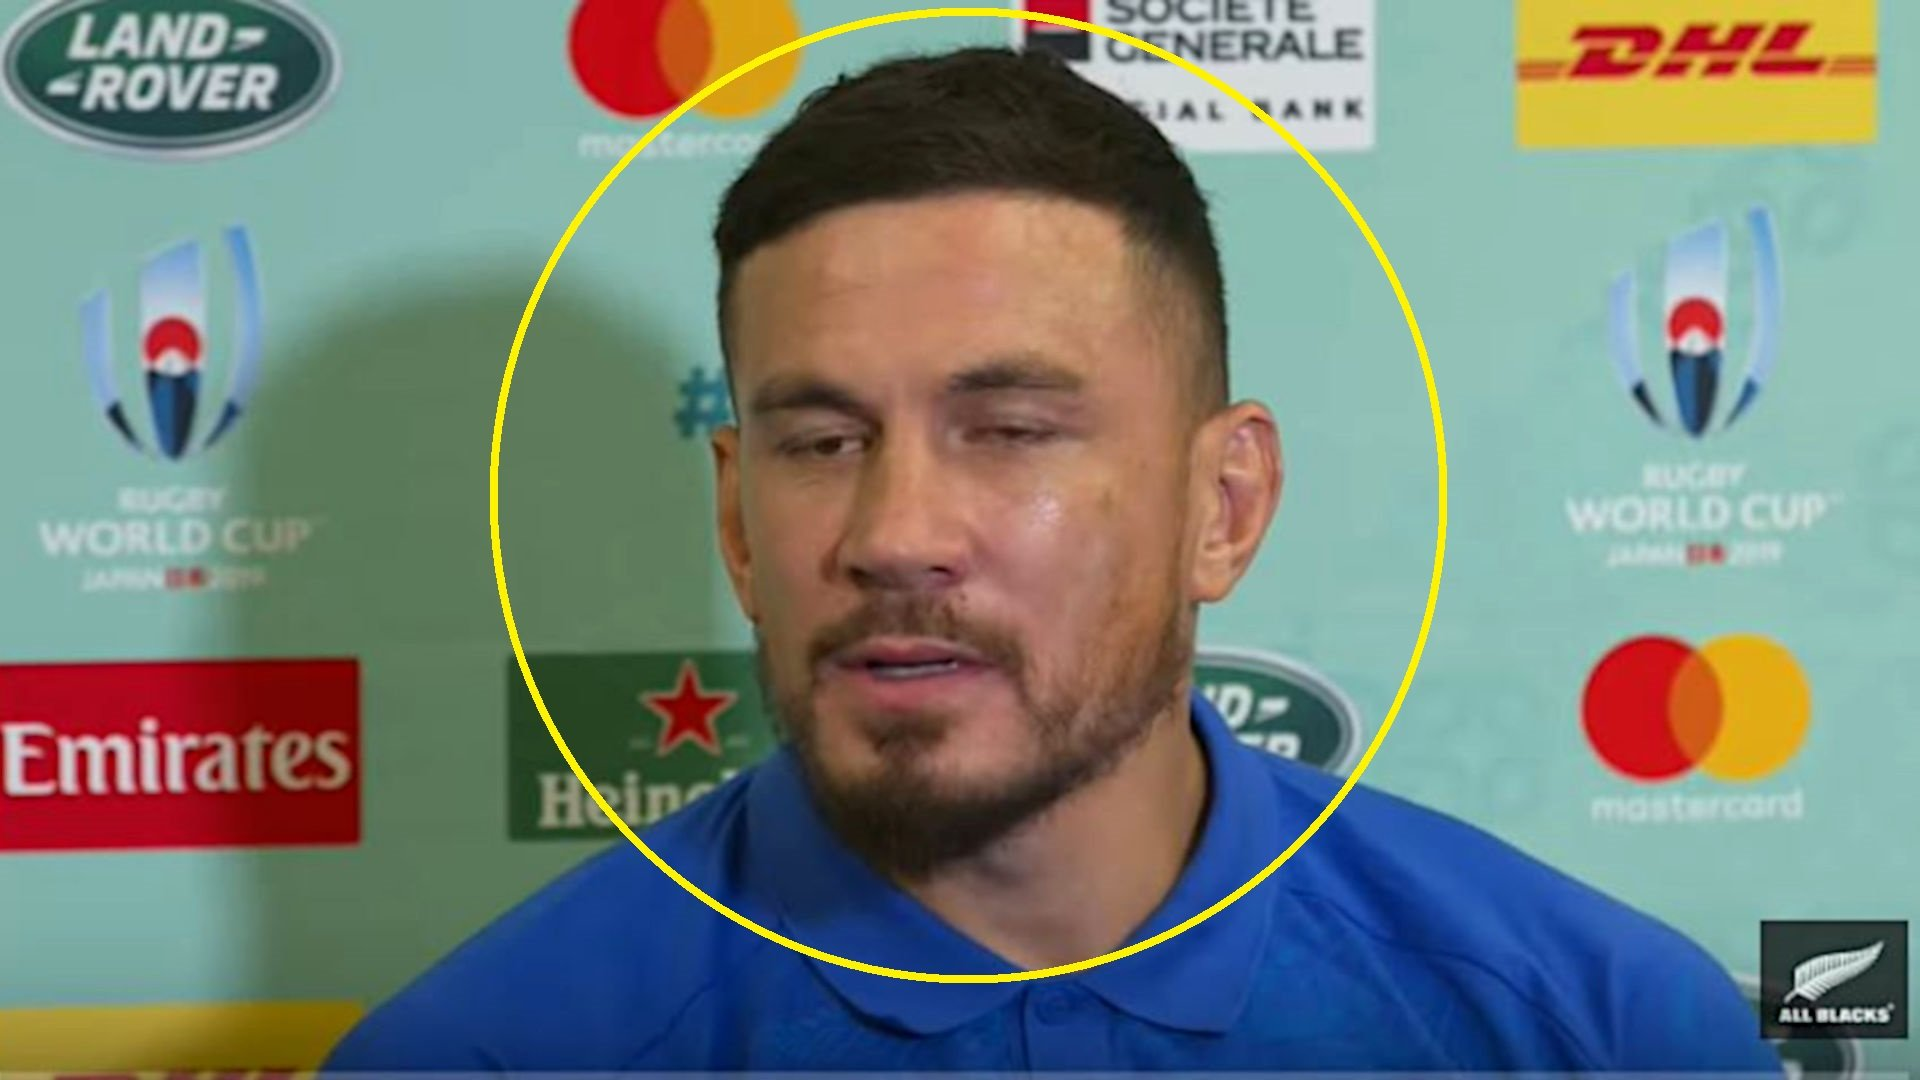 Sonny Bill saved his worst performance yet for Monday's press conference